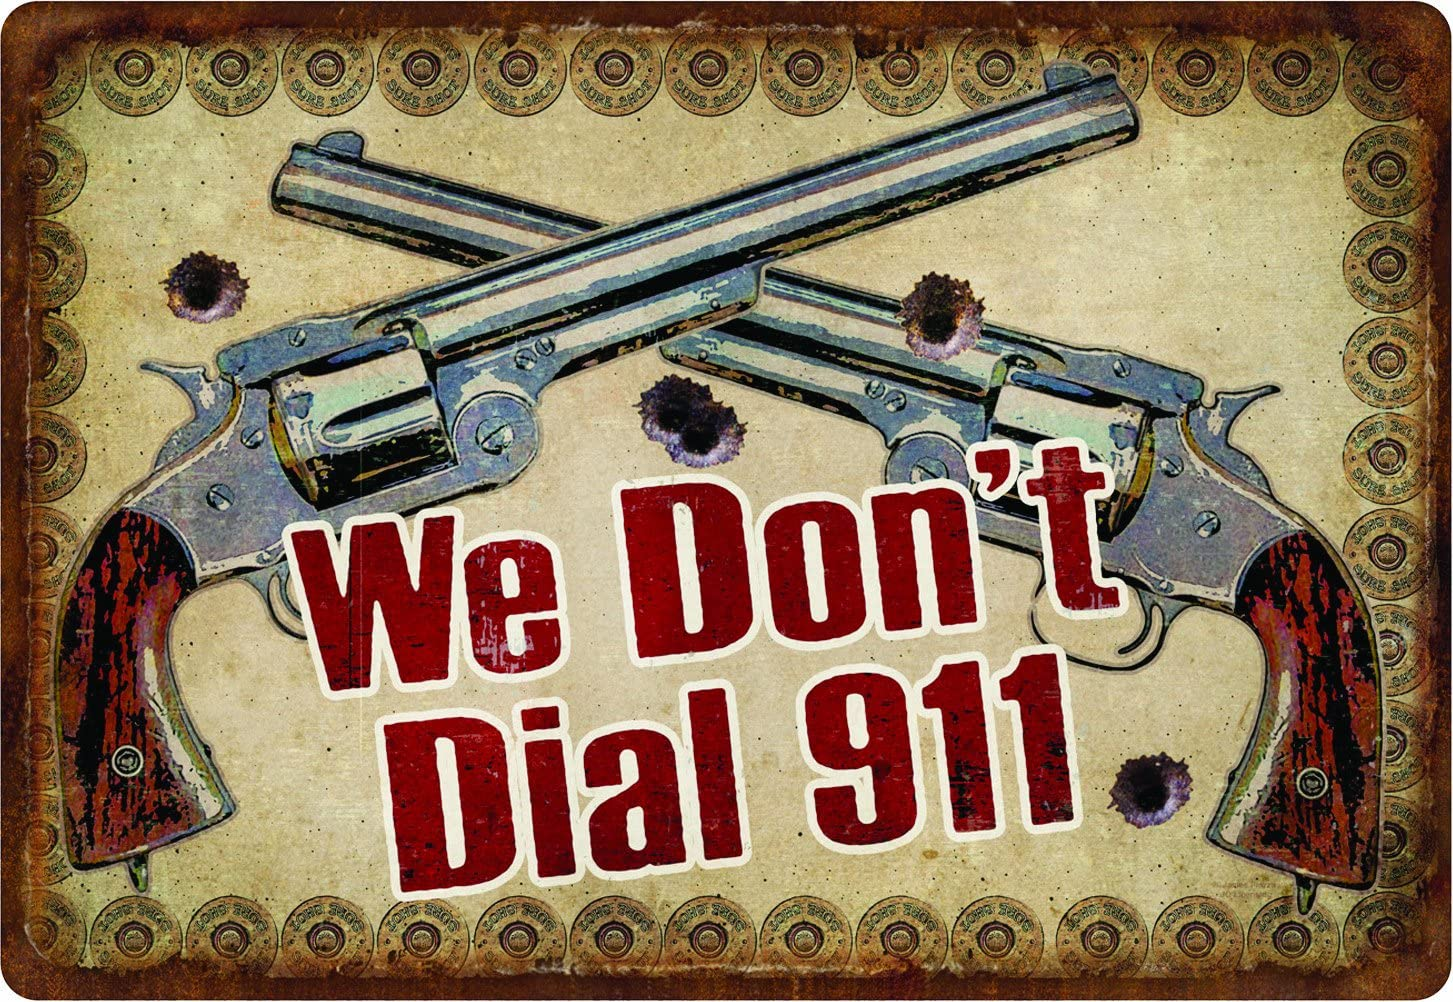 Quadro de metal decorativo We don't dial 911